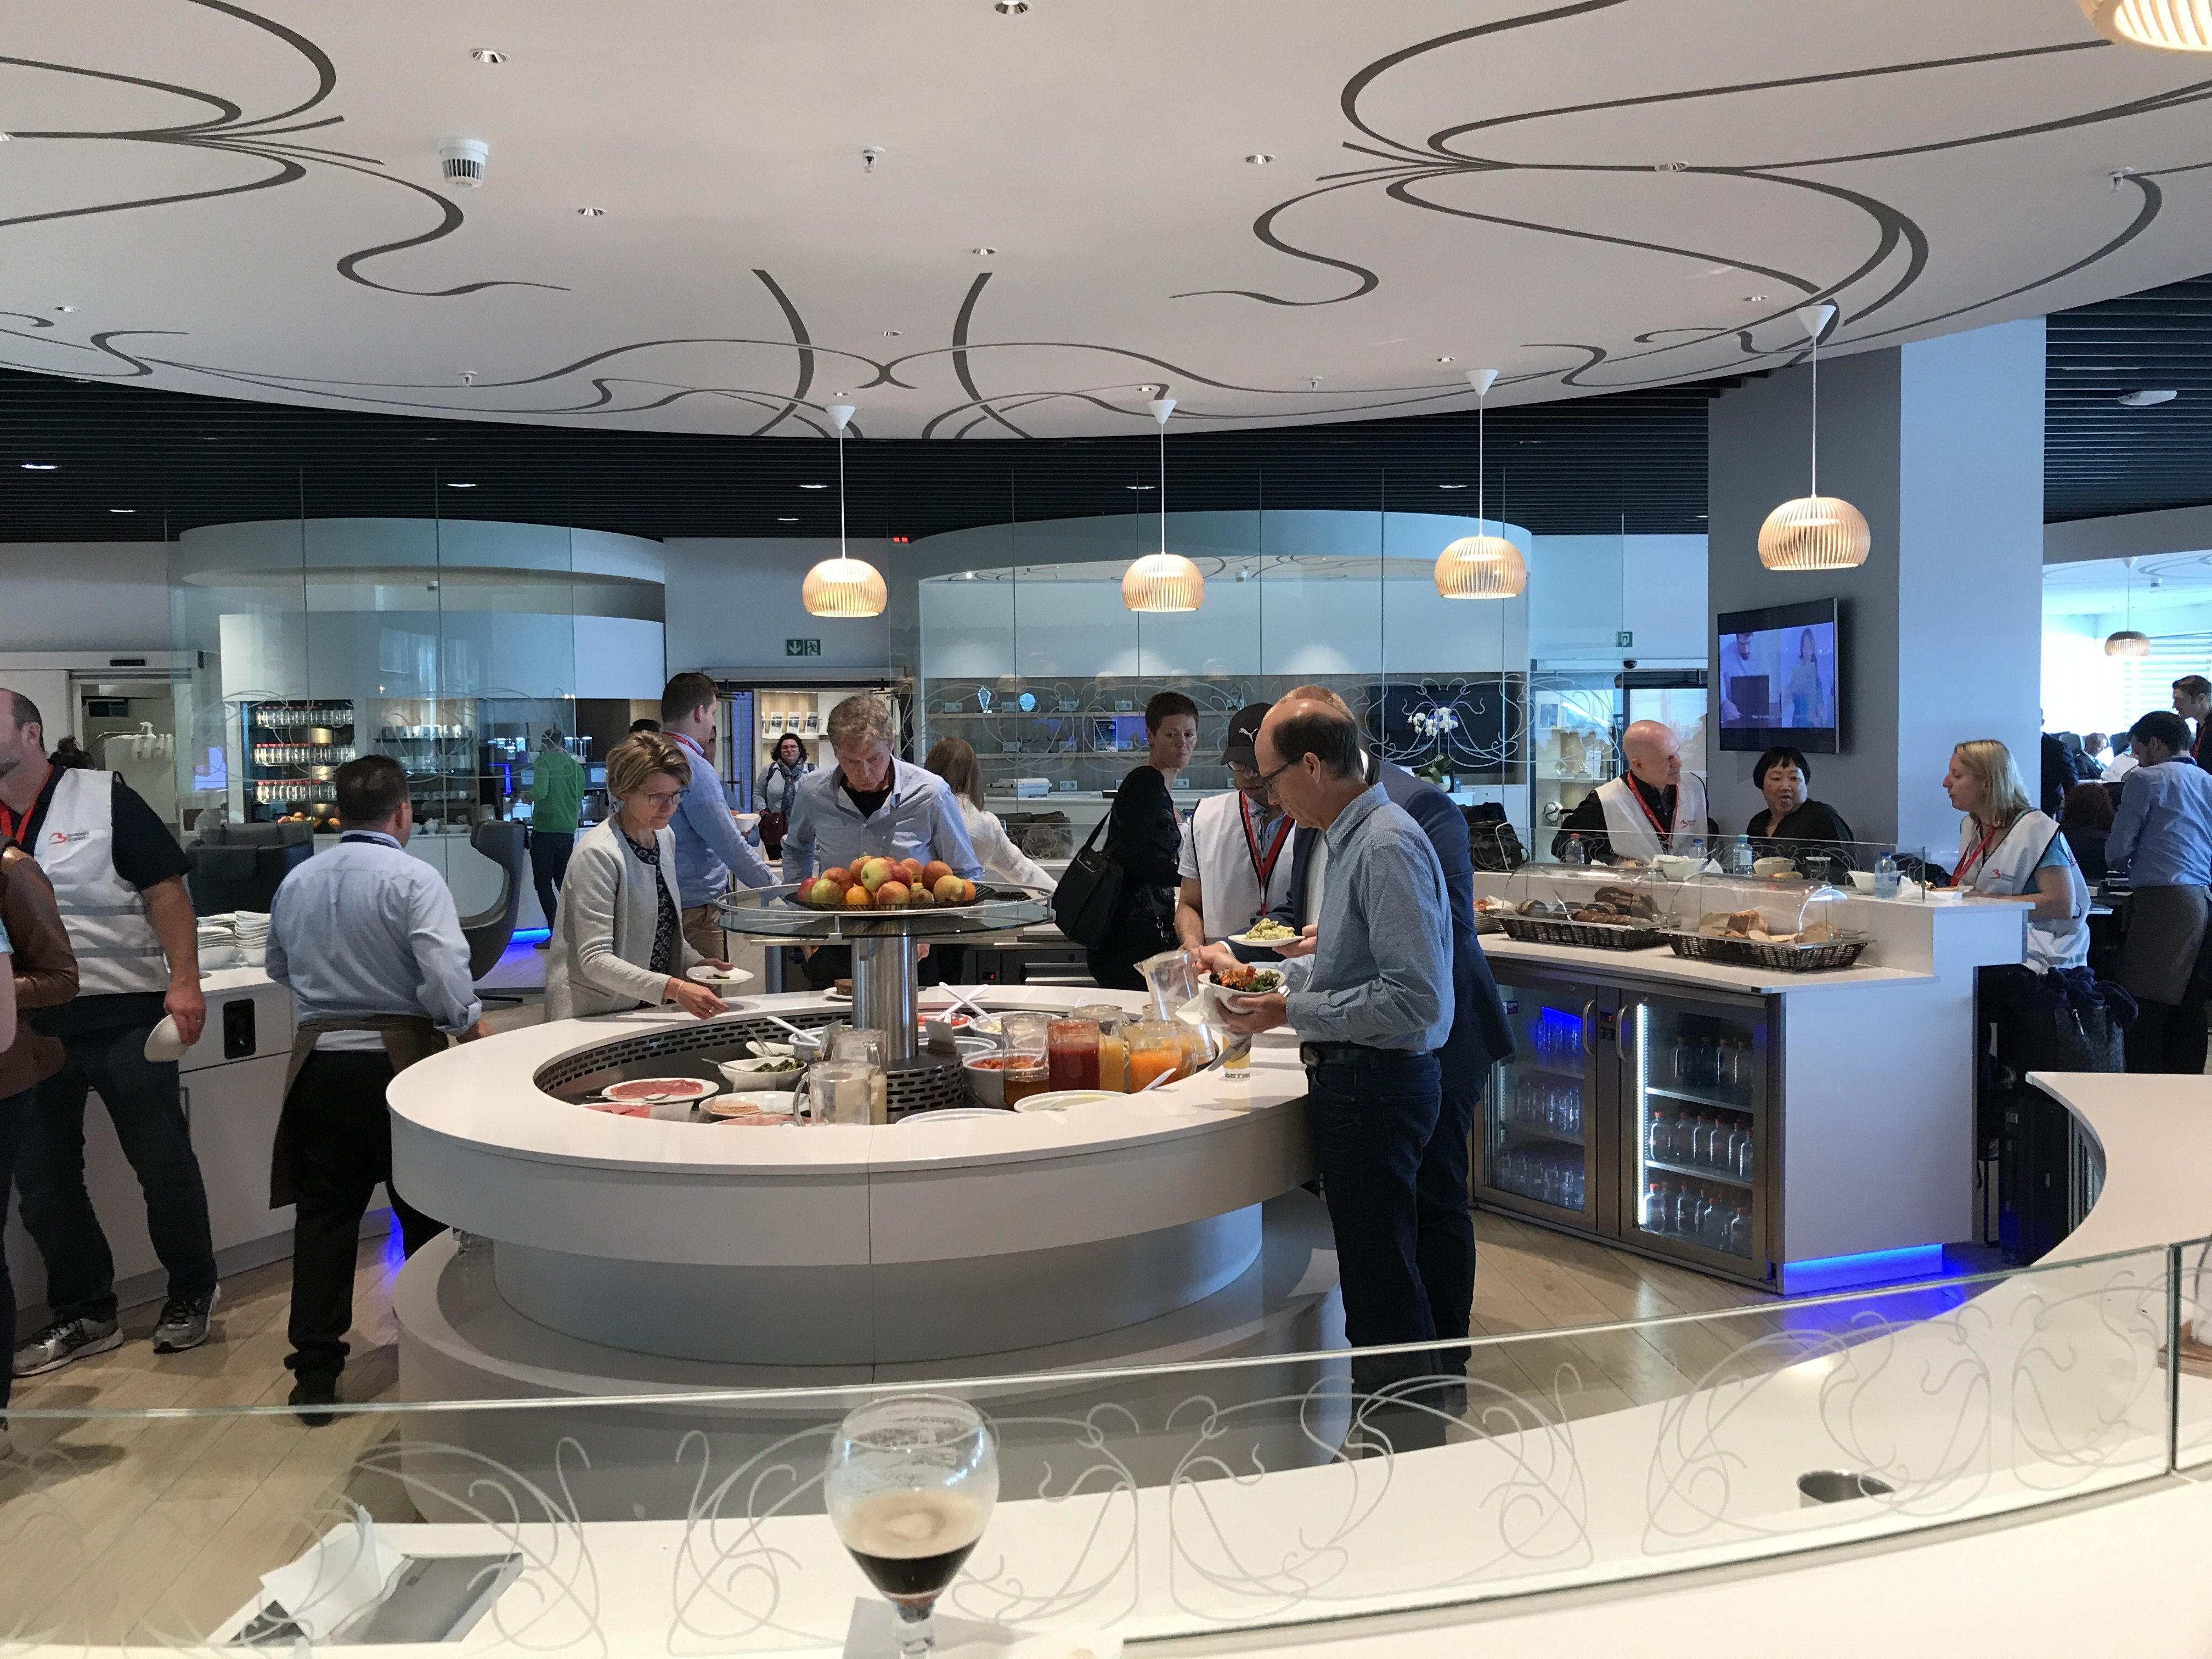 The salad bar at the loft business class lounge in Brussels airport